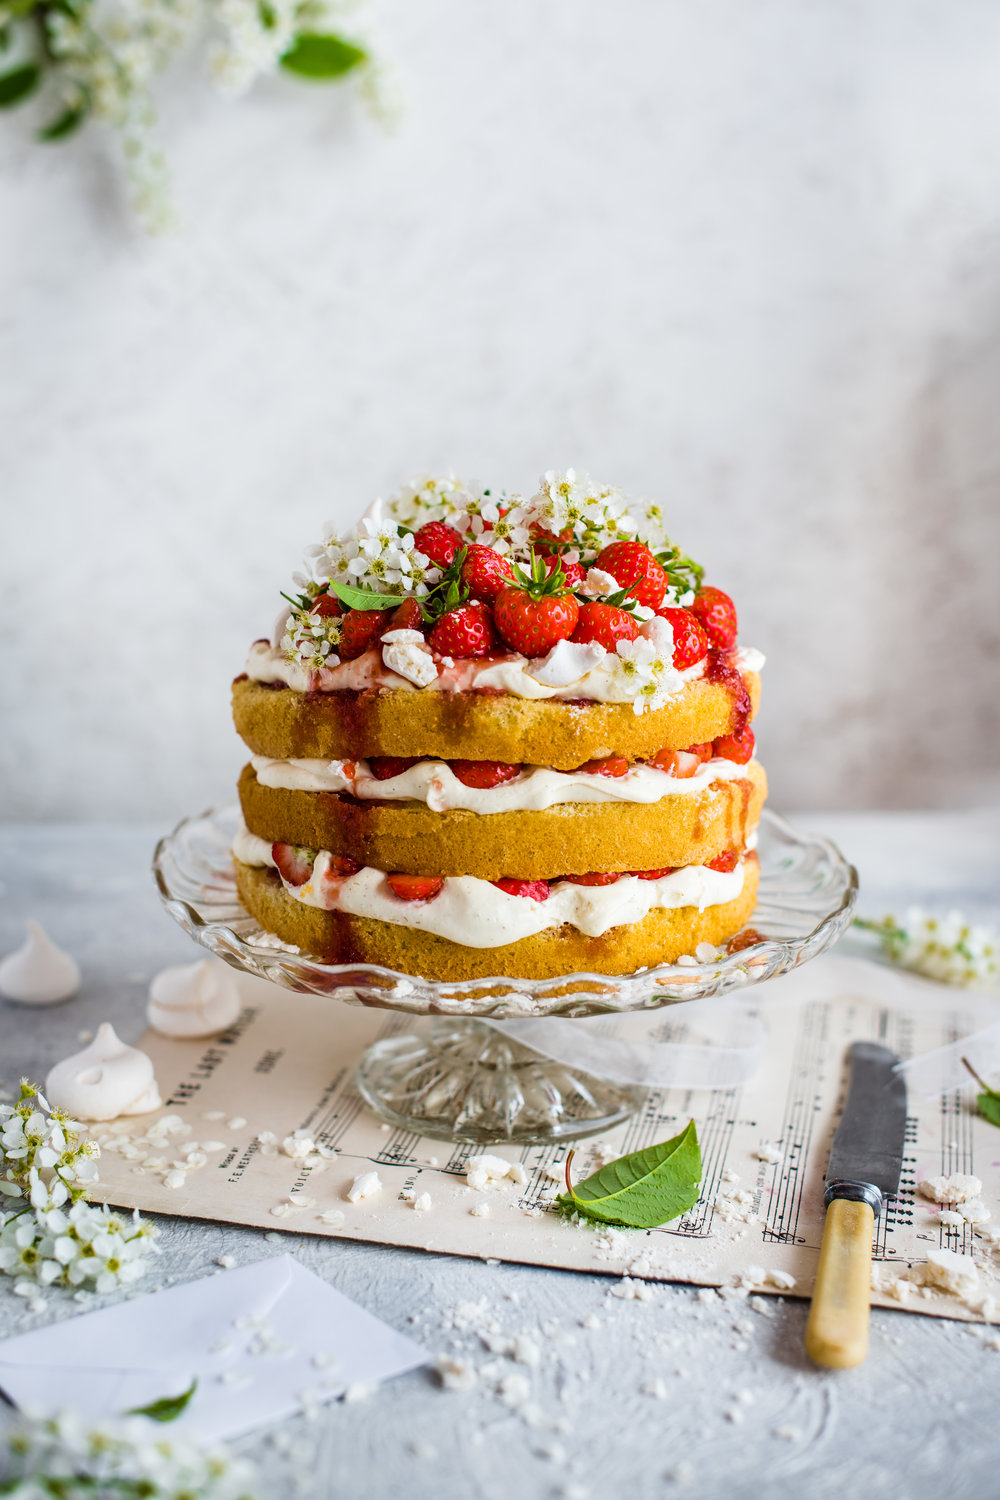 The Winner - Strawberry cake by Magdalena Hendy.What I liked; Lighting, composition, food arrangement and a sense of a special occasion. The props conjur up story of intimacy without being to obvious.Nicky Collings liked;